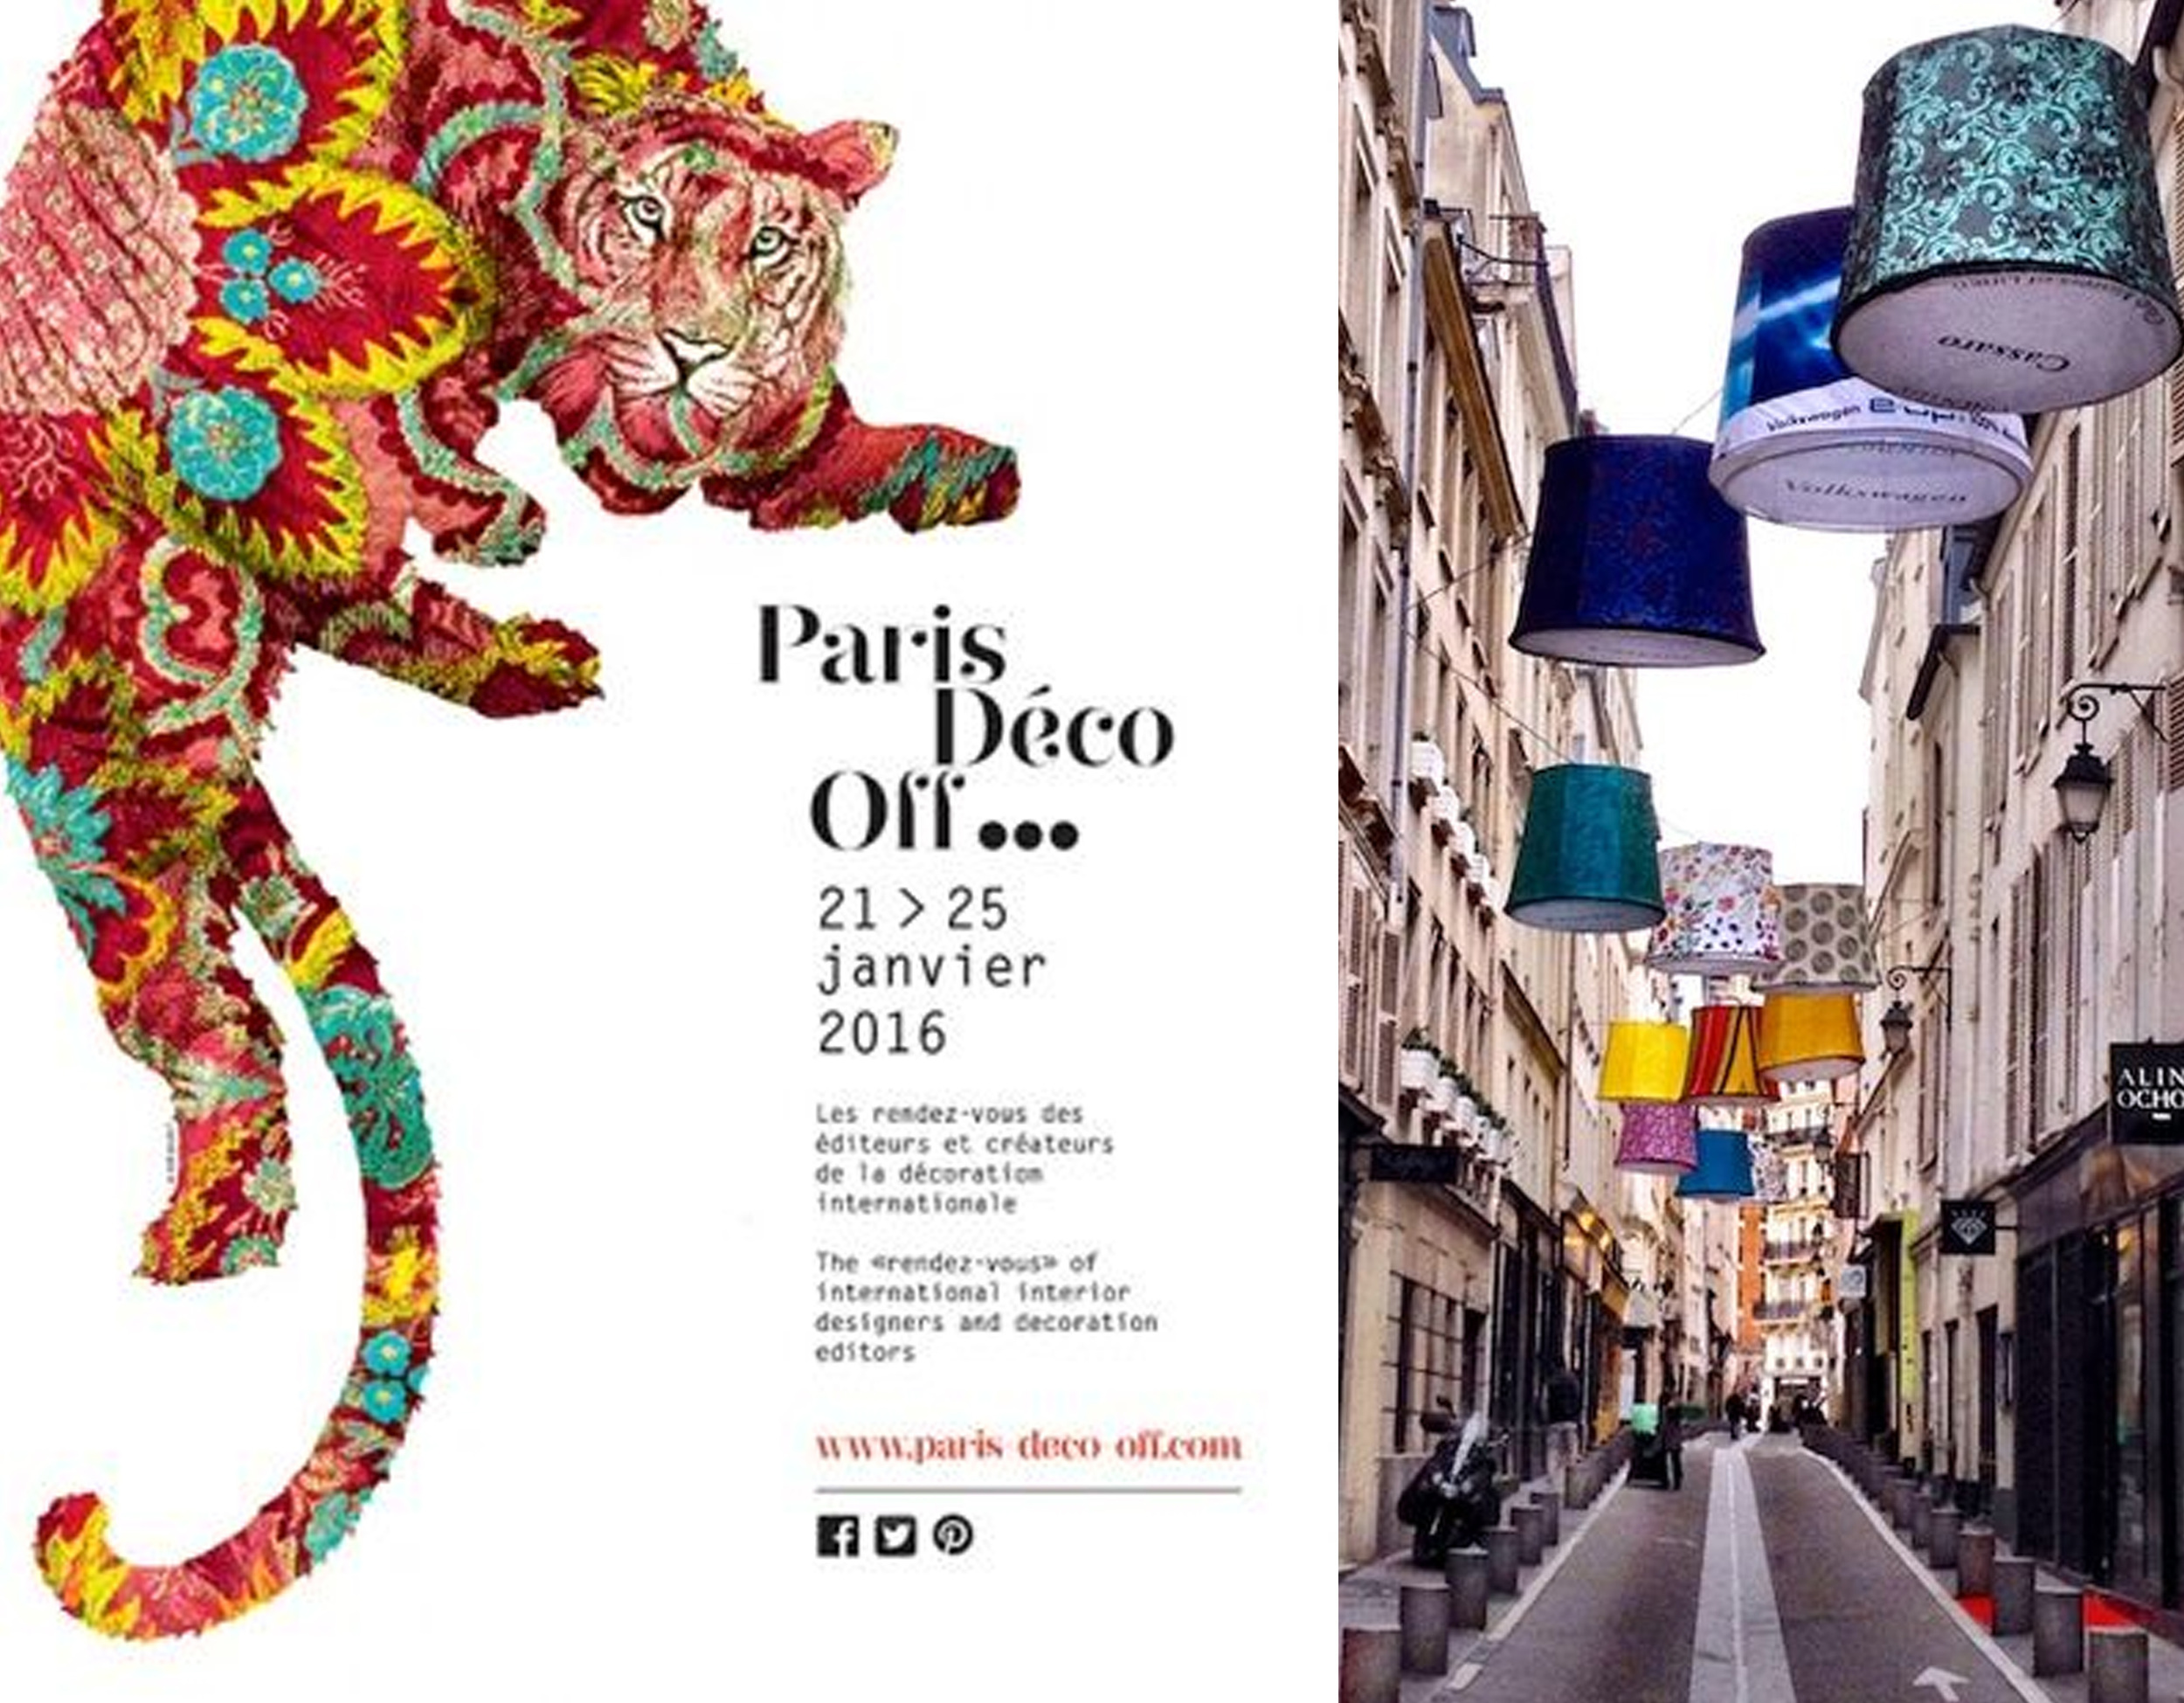 Deco-Off-Paris 2016.jpg